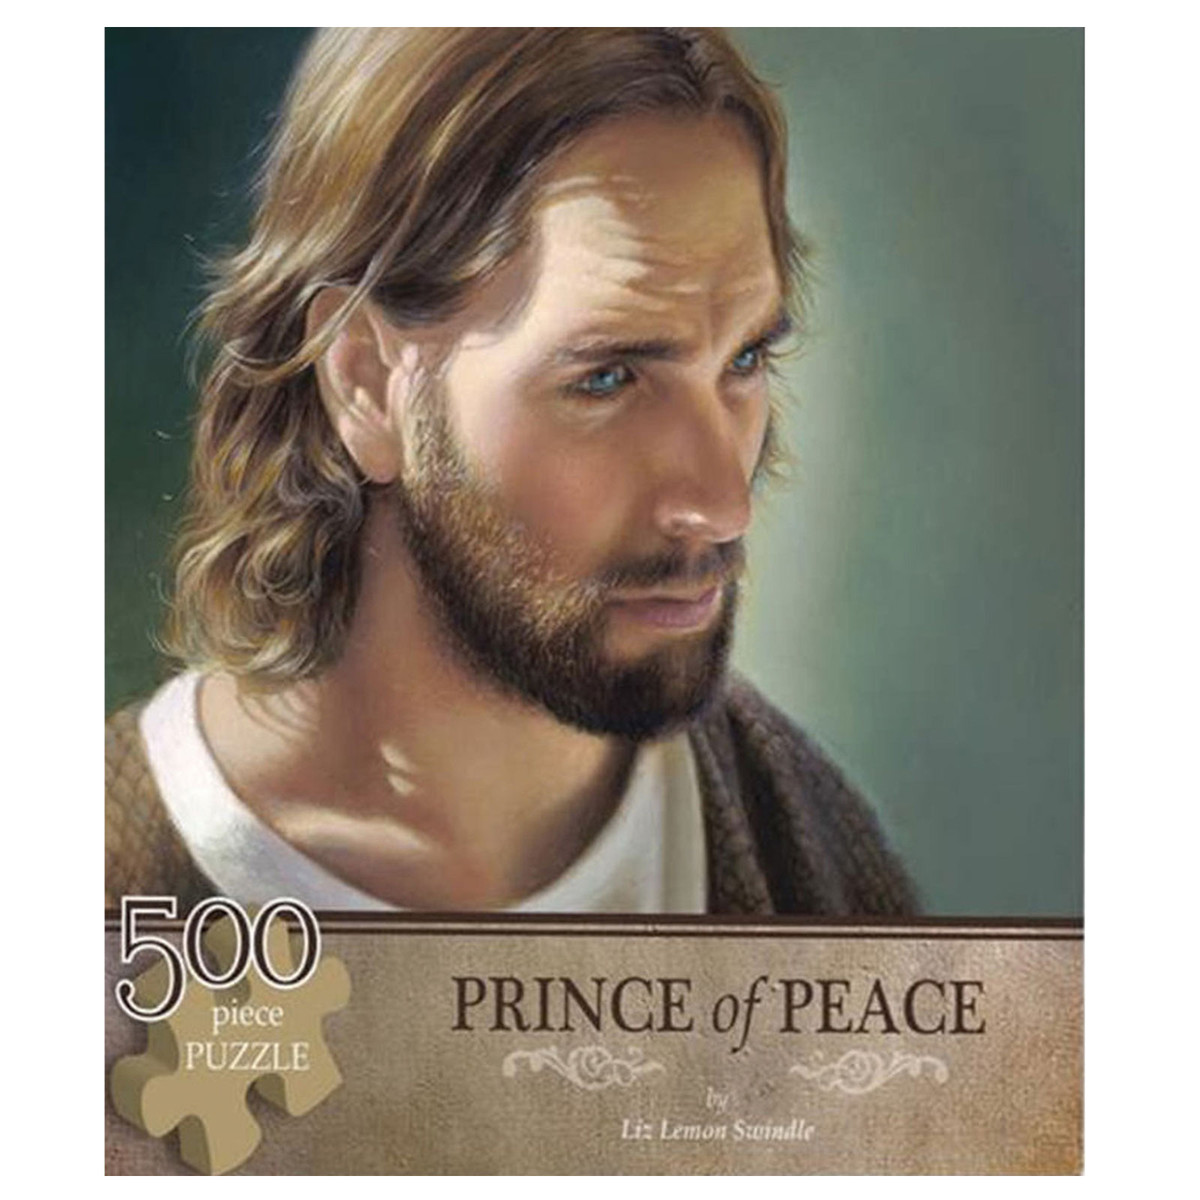 Puzzle Prince Of Peace Liz Lemon Swindle. Landscaping Companies In Charlotte Nc. Html5 Game Development Uhc Medicare Providers. Router Software For Windows Email Lists Usa. Unesco Higher Education Movers West Hollywood. Online Spanish Classes For College Credit. American Medical Hobbs Nm Sas 70 Replacement. Investing In Real Estate With No Money Down. Cpanel Billing Software Seguro Medico Familiar